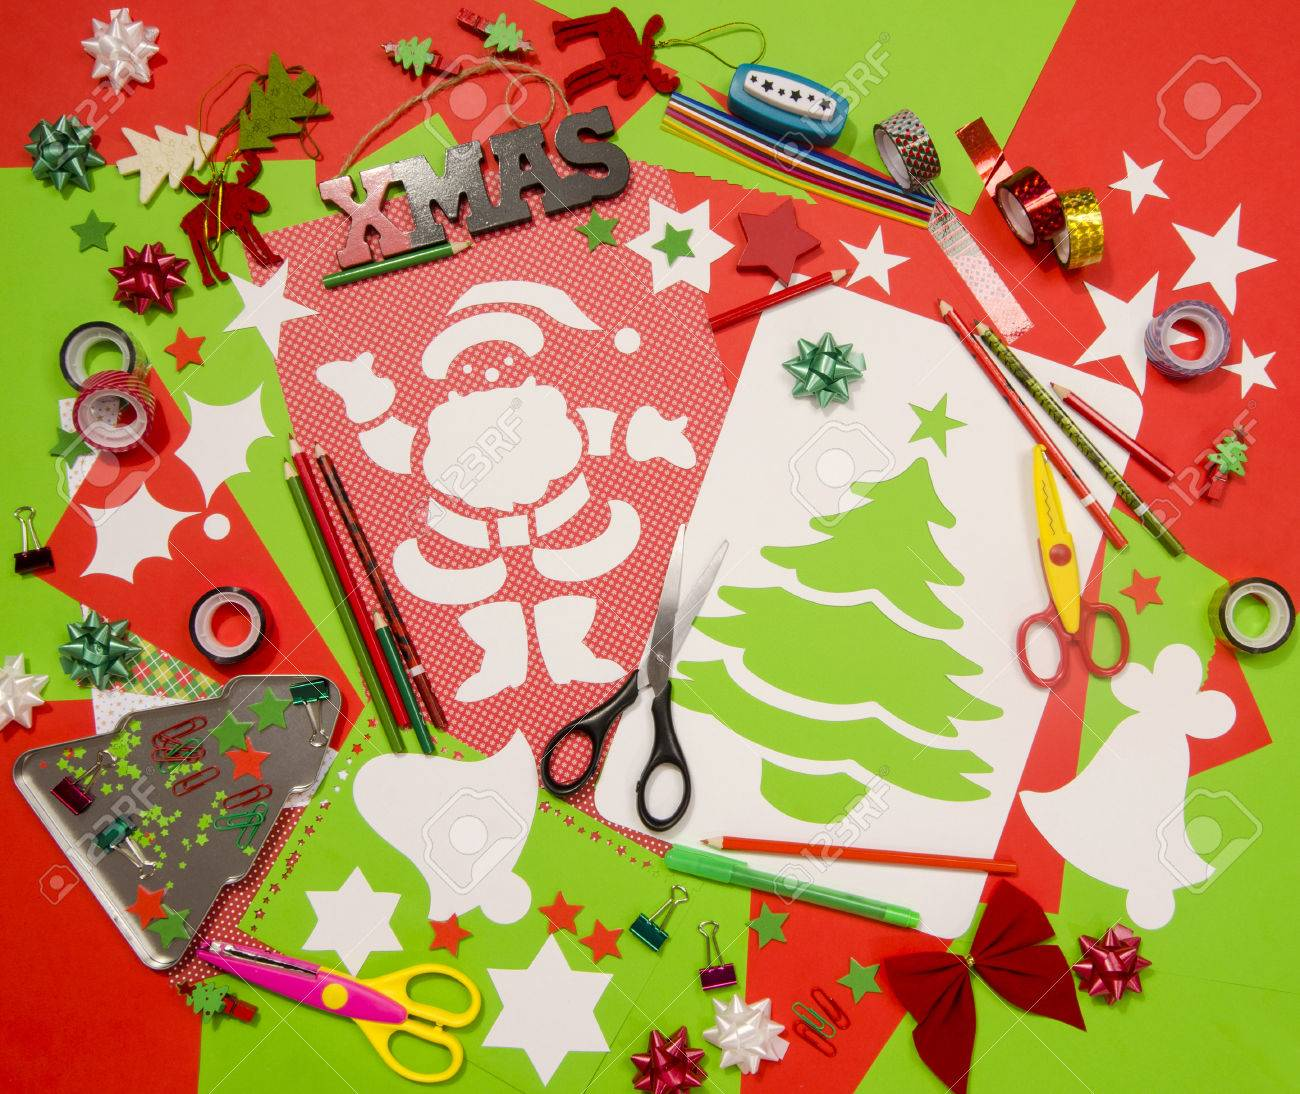 Craft Supplies Christmas Part - 17: Arts And Craft Supplies For Christmas. Red And Green Color Paper, Pencils,  Different